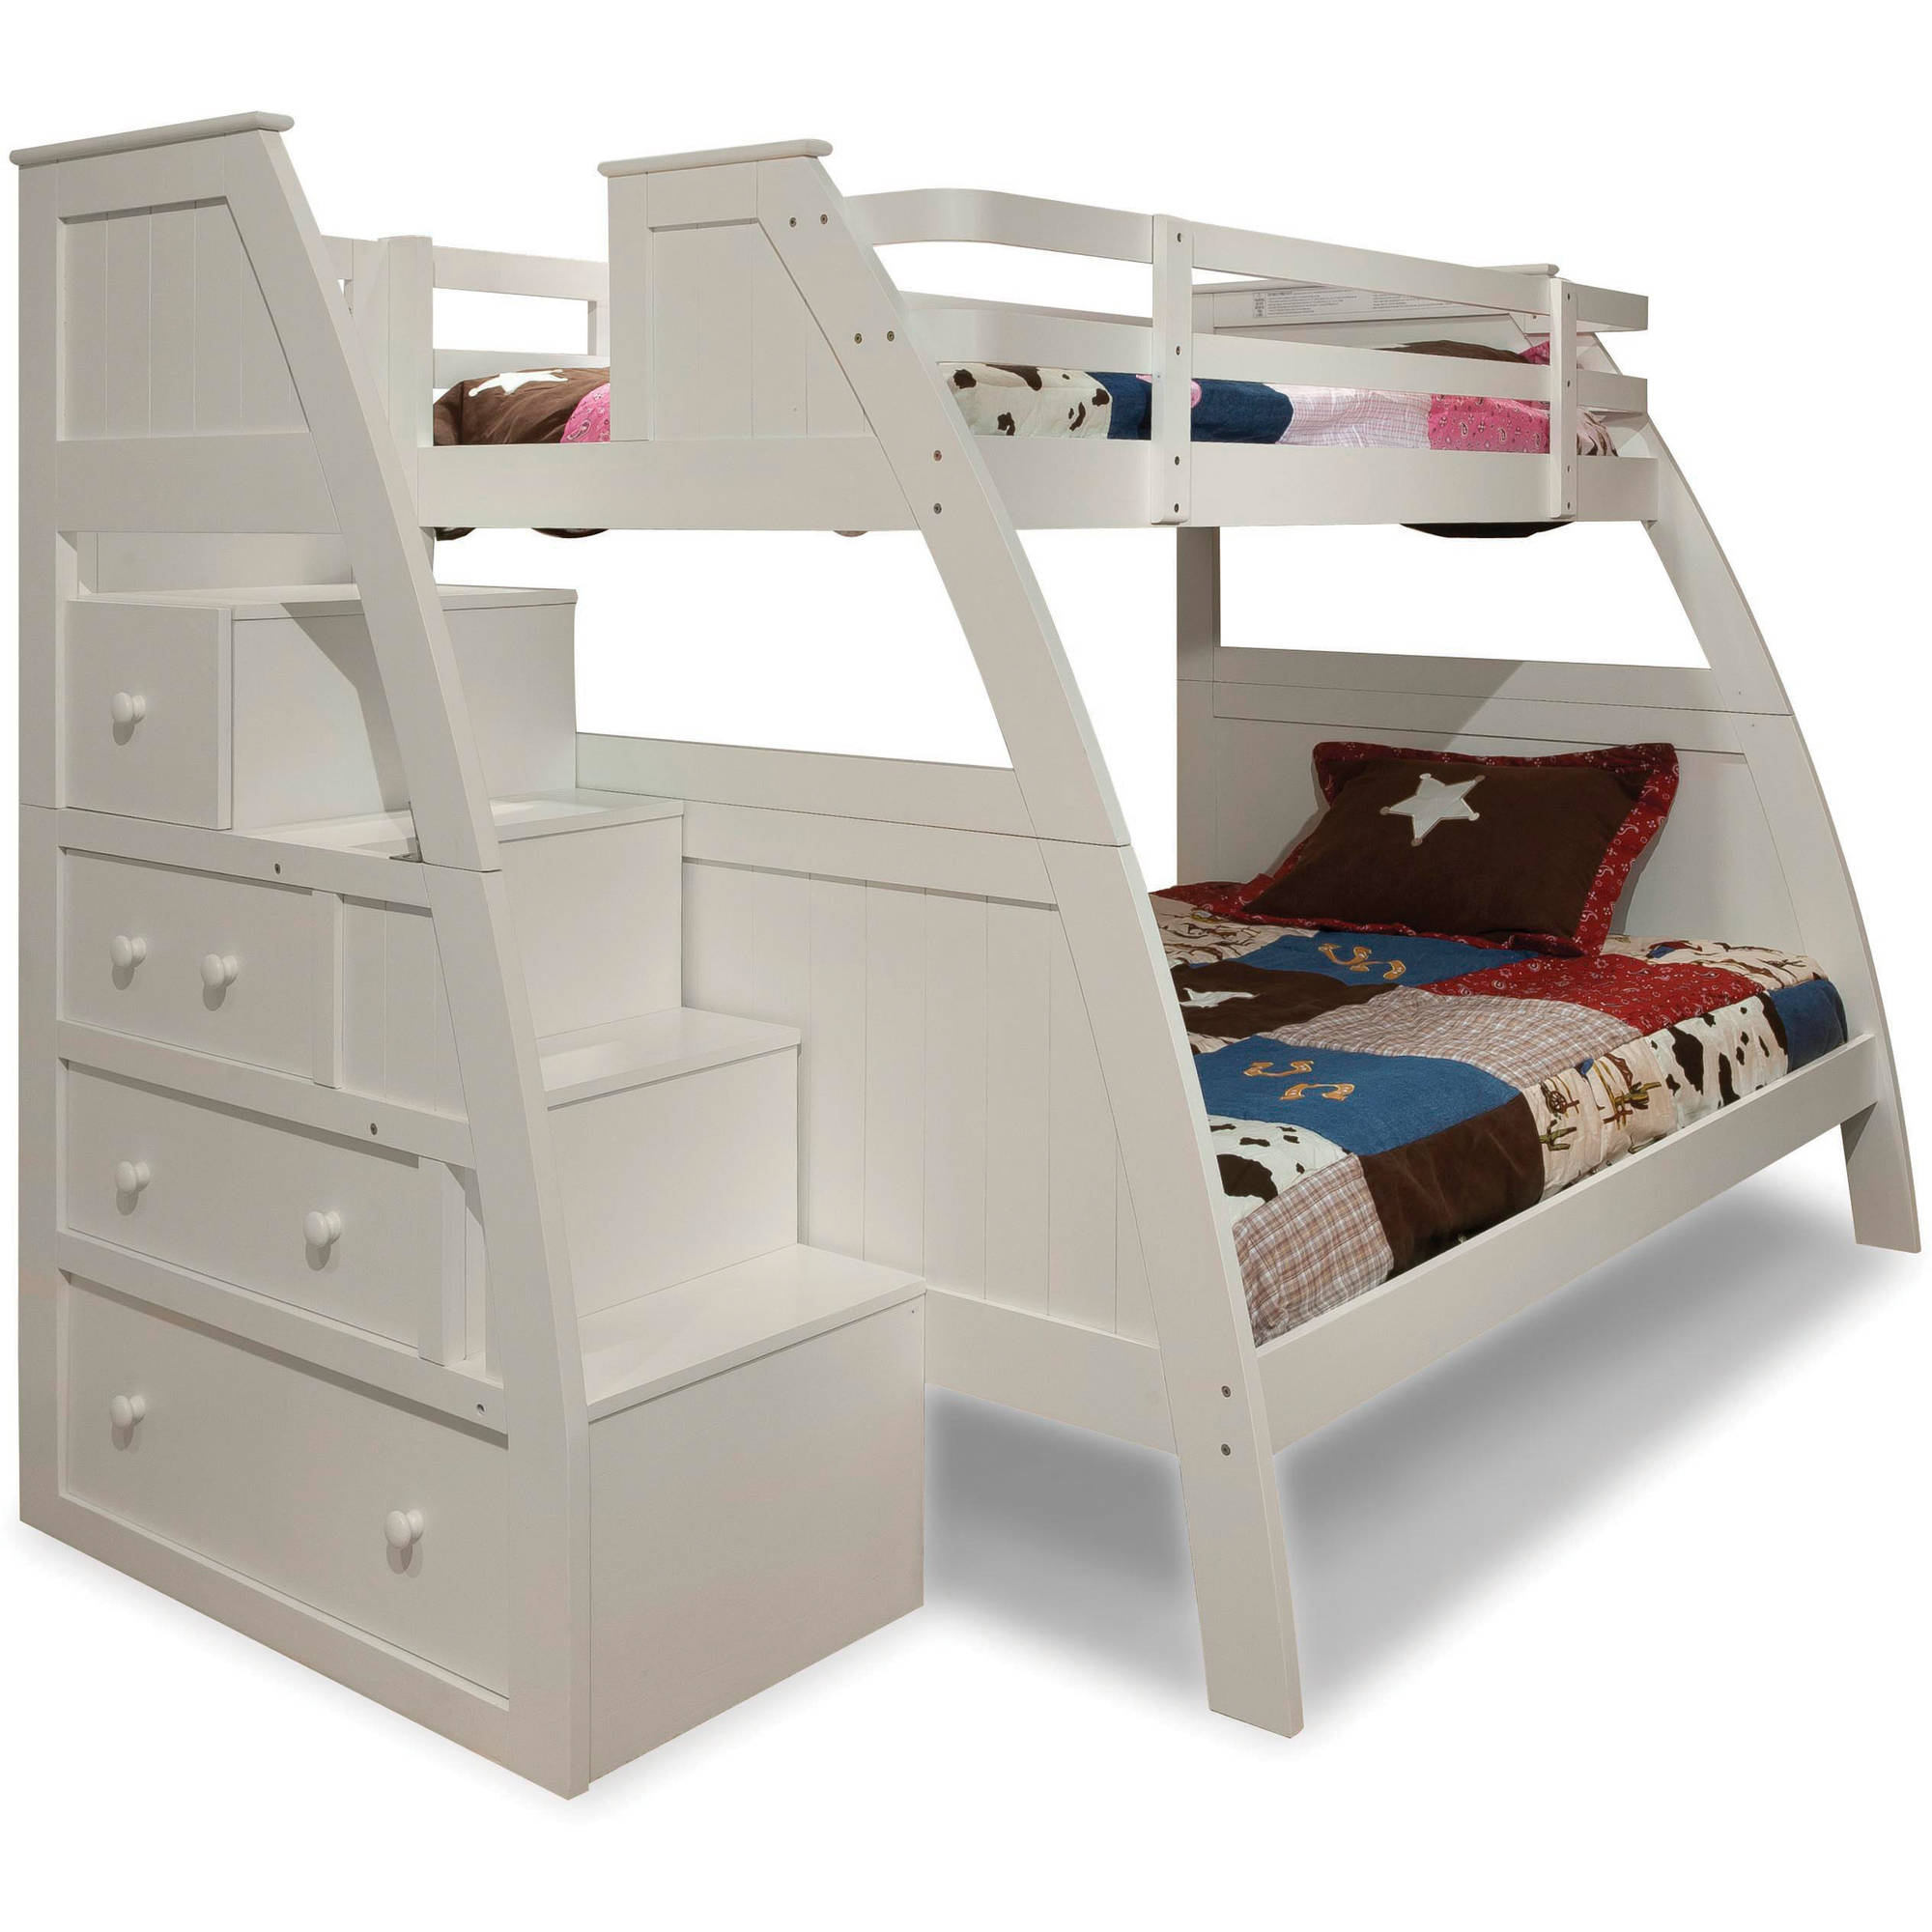 Better Homes and Gardens Kids Sebring Twin Over Full Bunk Bed with Storage, White (Box 1 of 5)